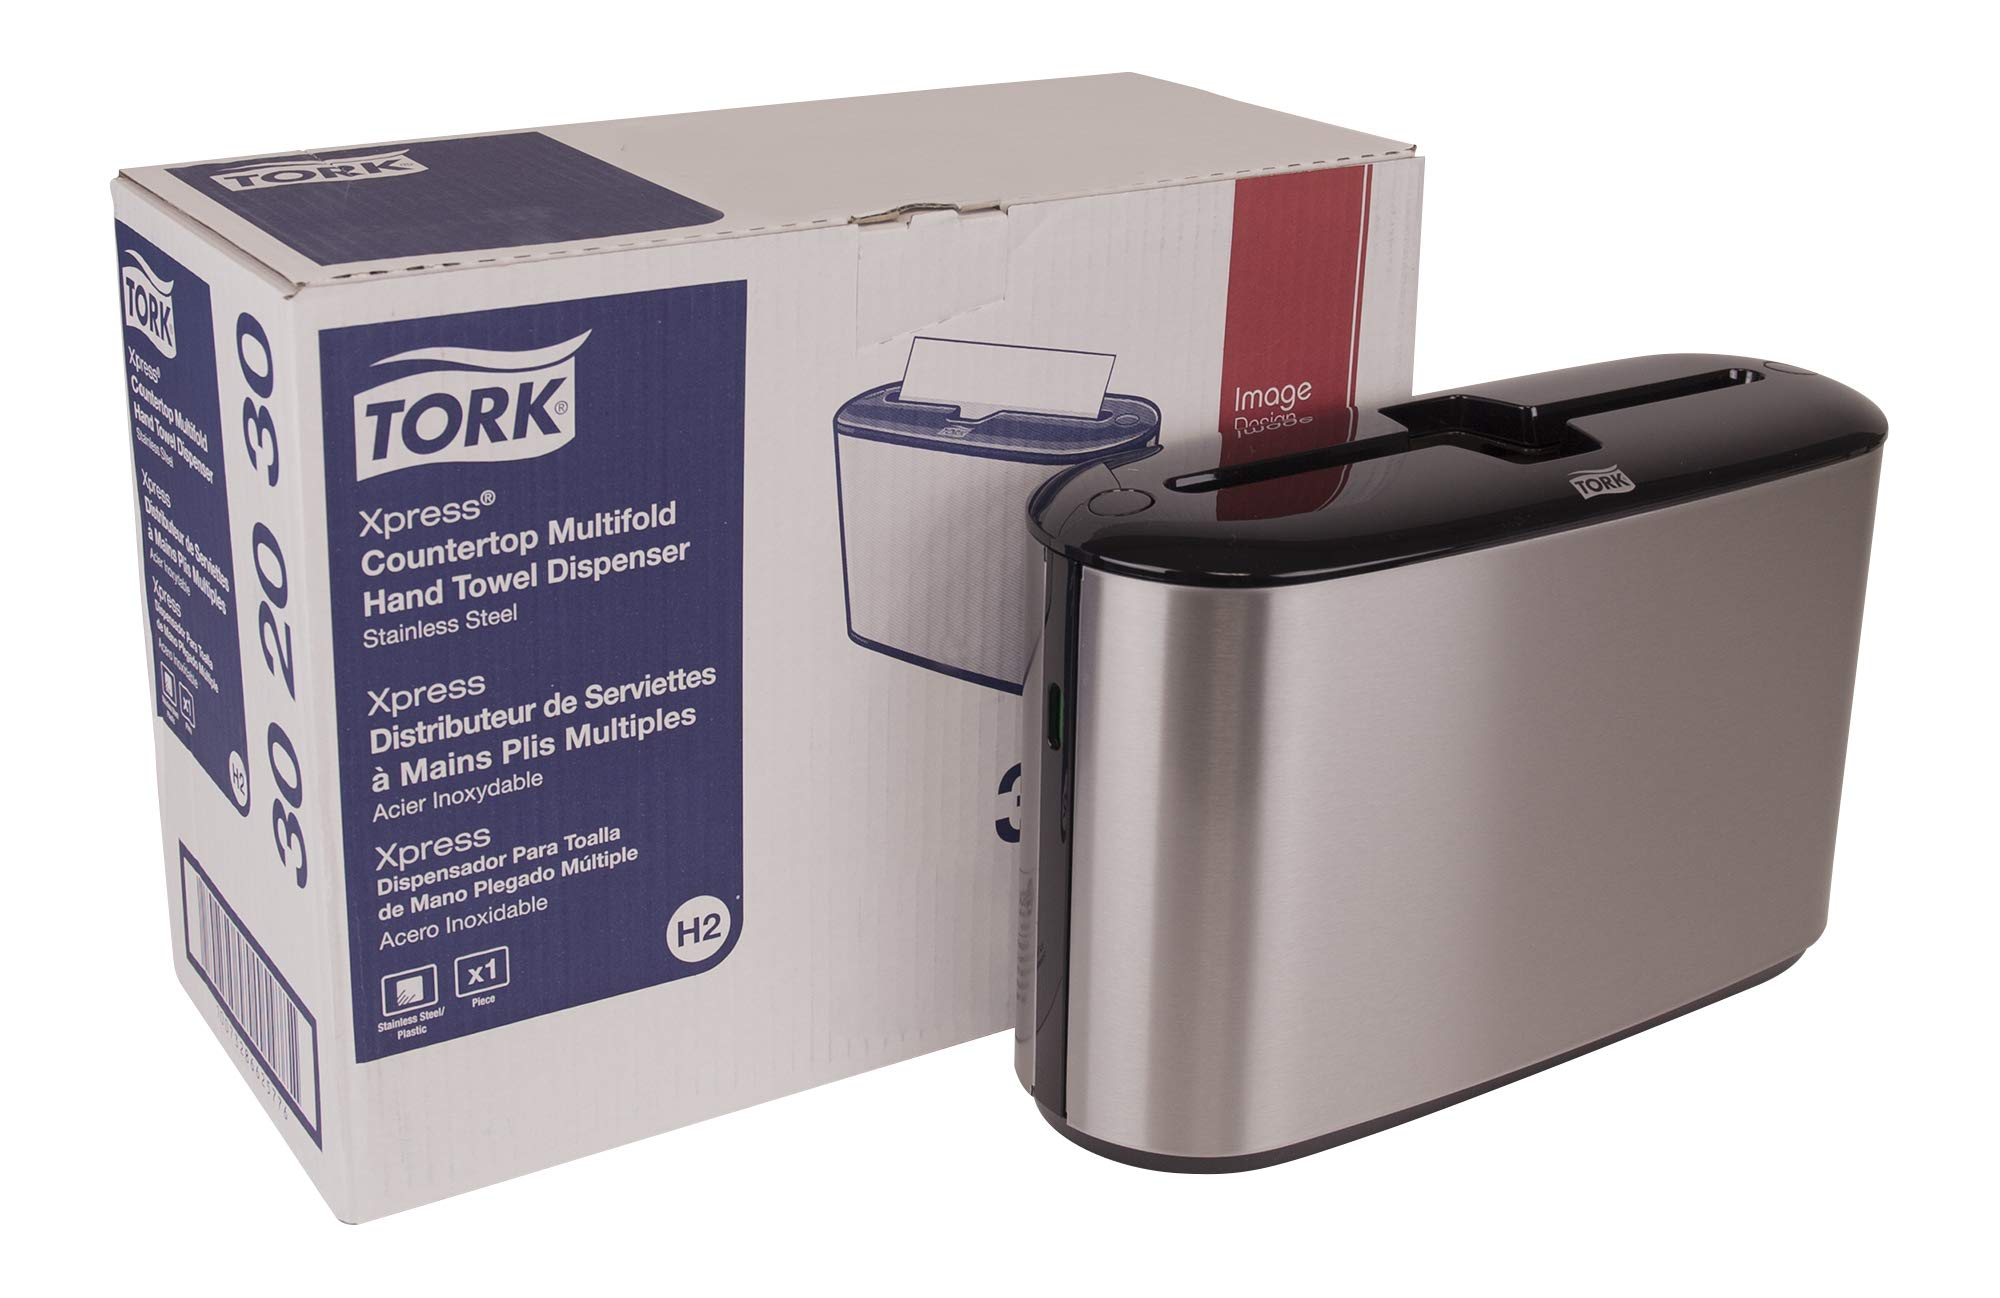 Tork 302030 Xpress Countertop Multifold Hand Towel Dispenser, Plastic, 7.92'' Height x 12.68'' Width x 4.56'' Depth, Stainless Steel, Use with Tork MB550A, MB640, MB540A, H2/H23 by Tork